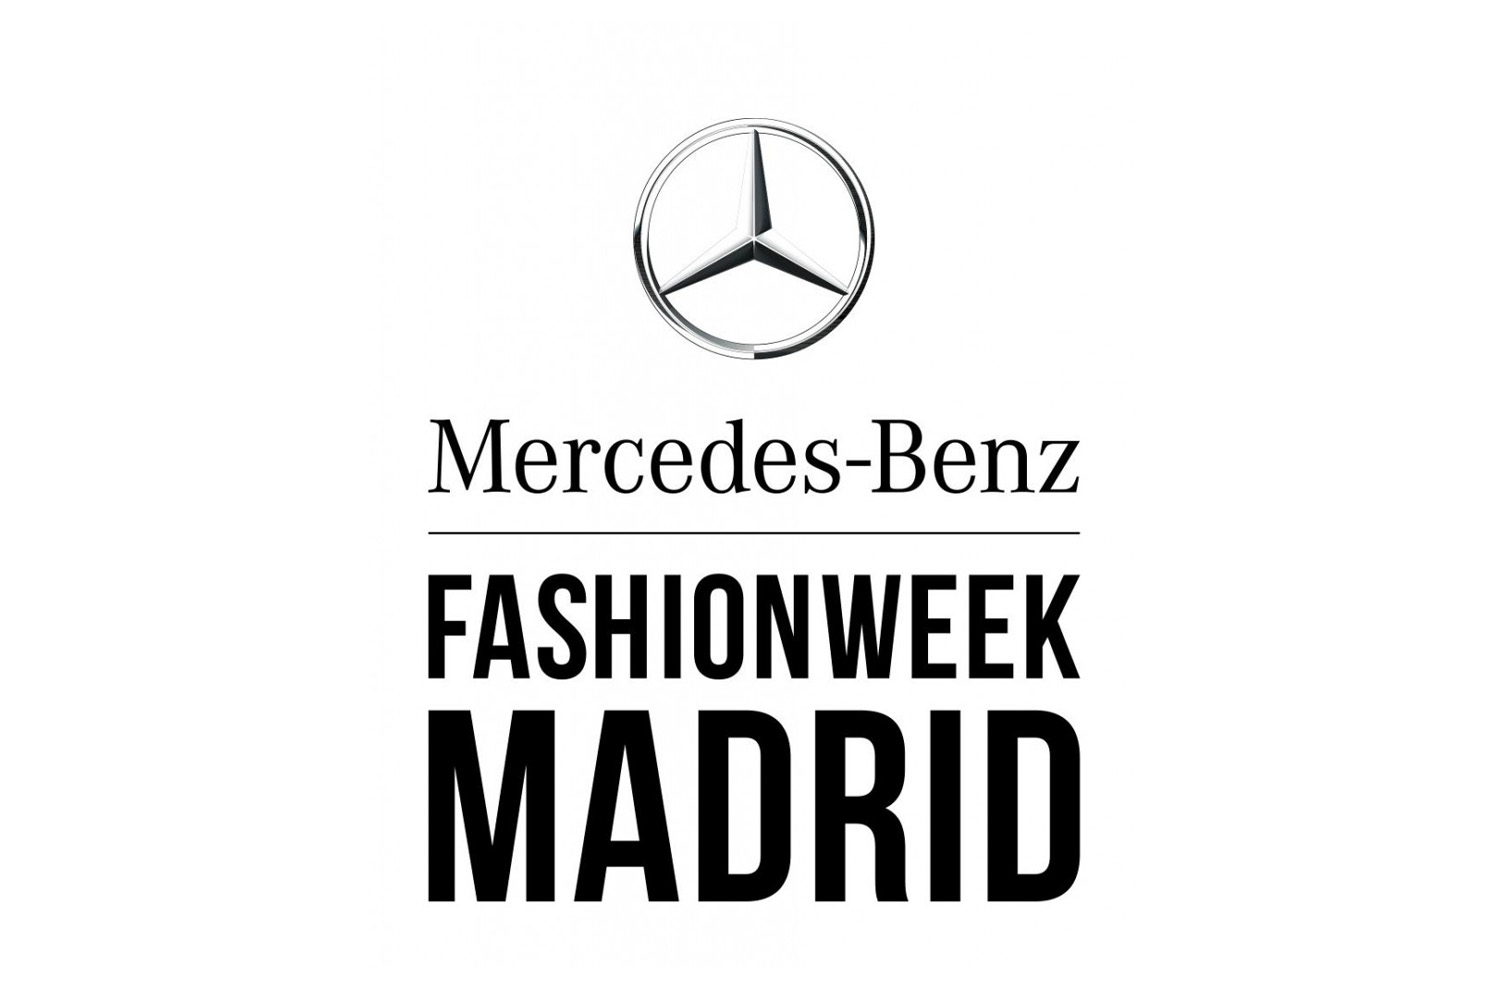 Decorar-una-casa-mercedes-benz-fashion-week-madrid